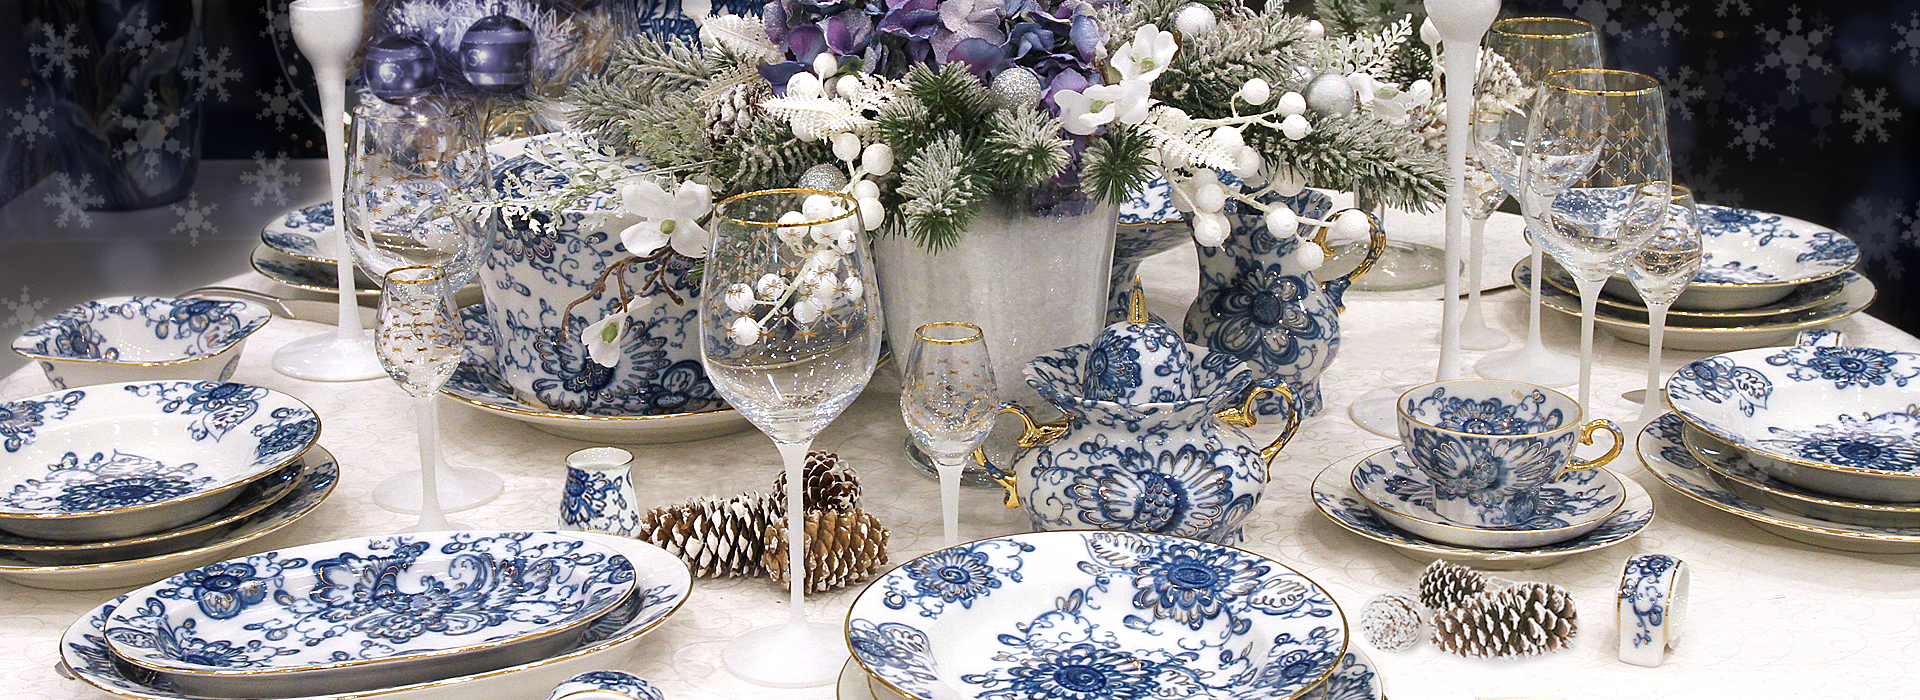 It includes cutlery glassware serving dishes and other useful items for practical as well as decorative purposes. & Dinnerware | Lomonosov Russia - Factory Direct from Russia